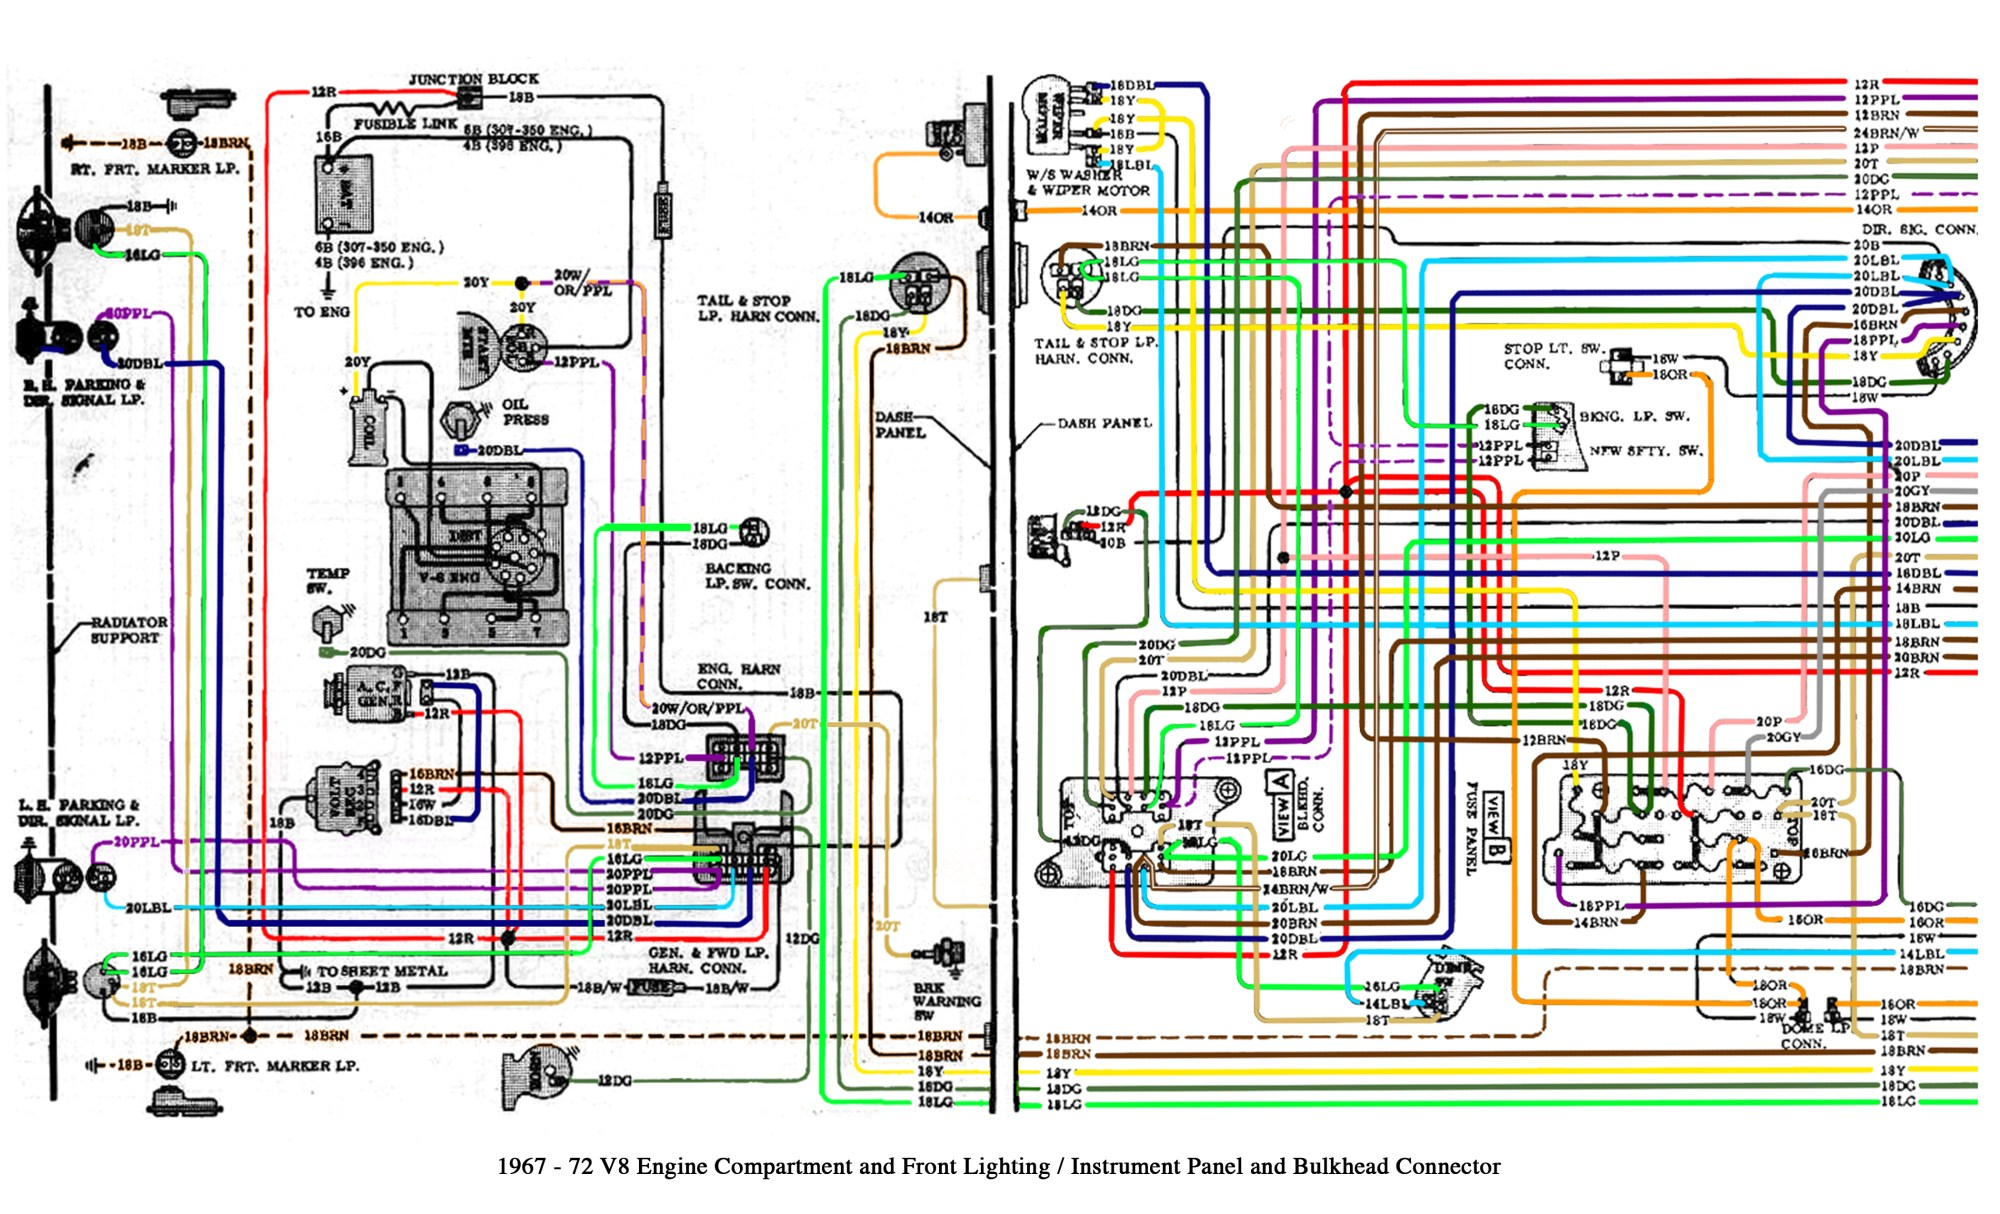 hight resolution of 1972 chevrolet monte carlo wiring diagram wiring diagram blog 1972 c10 wiring diagram wiring diagram post